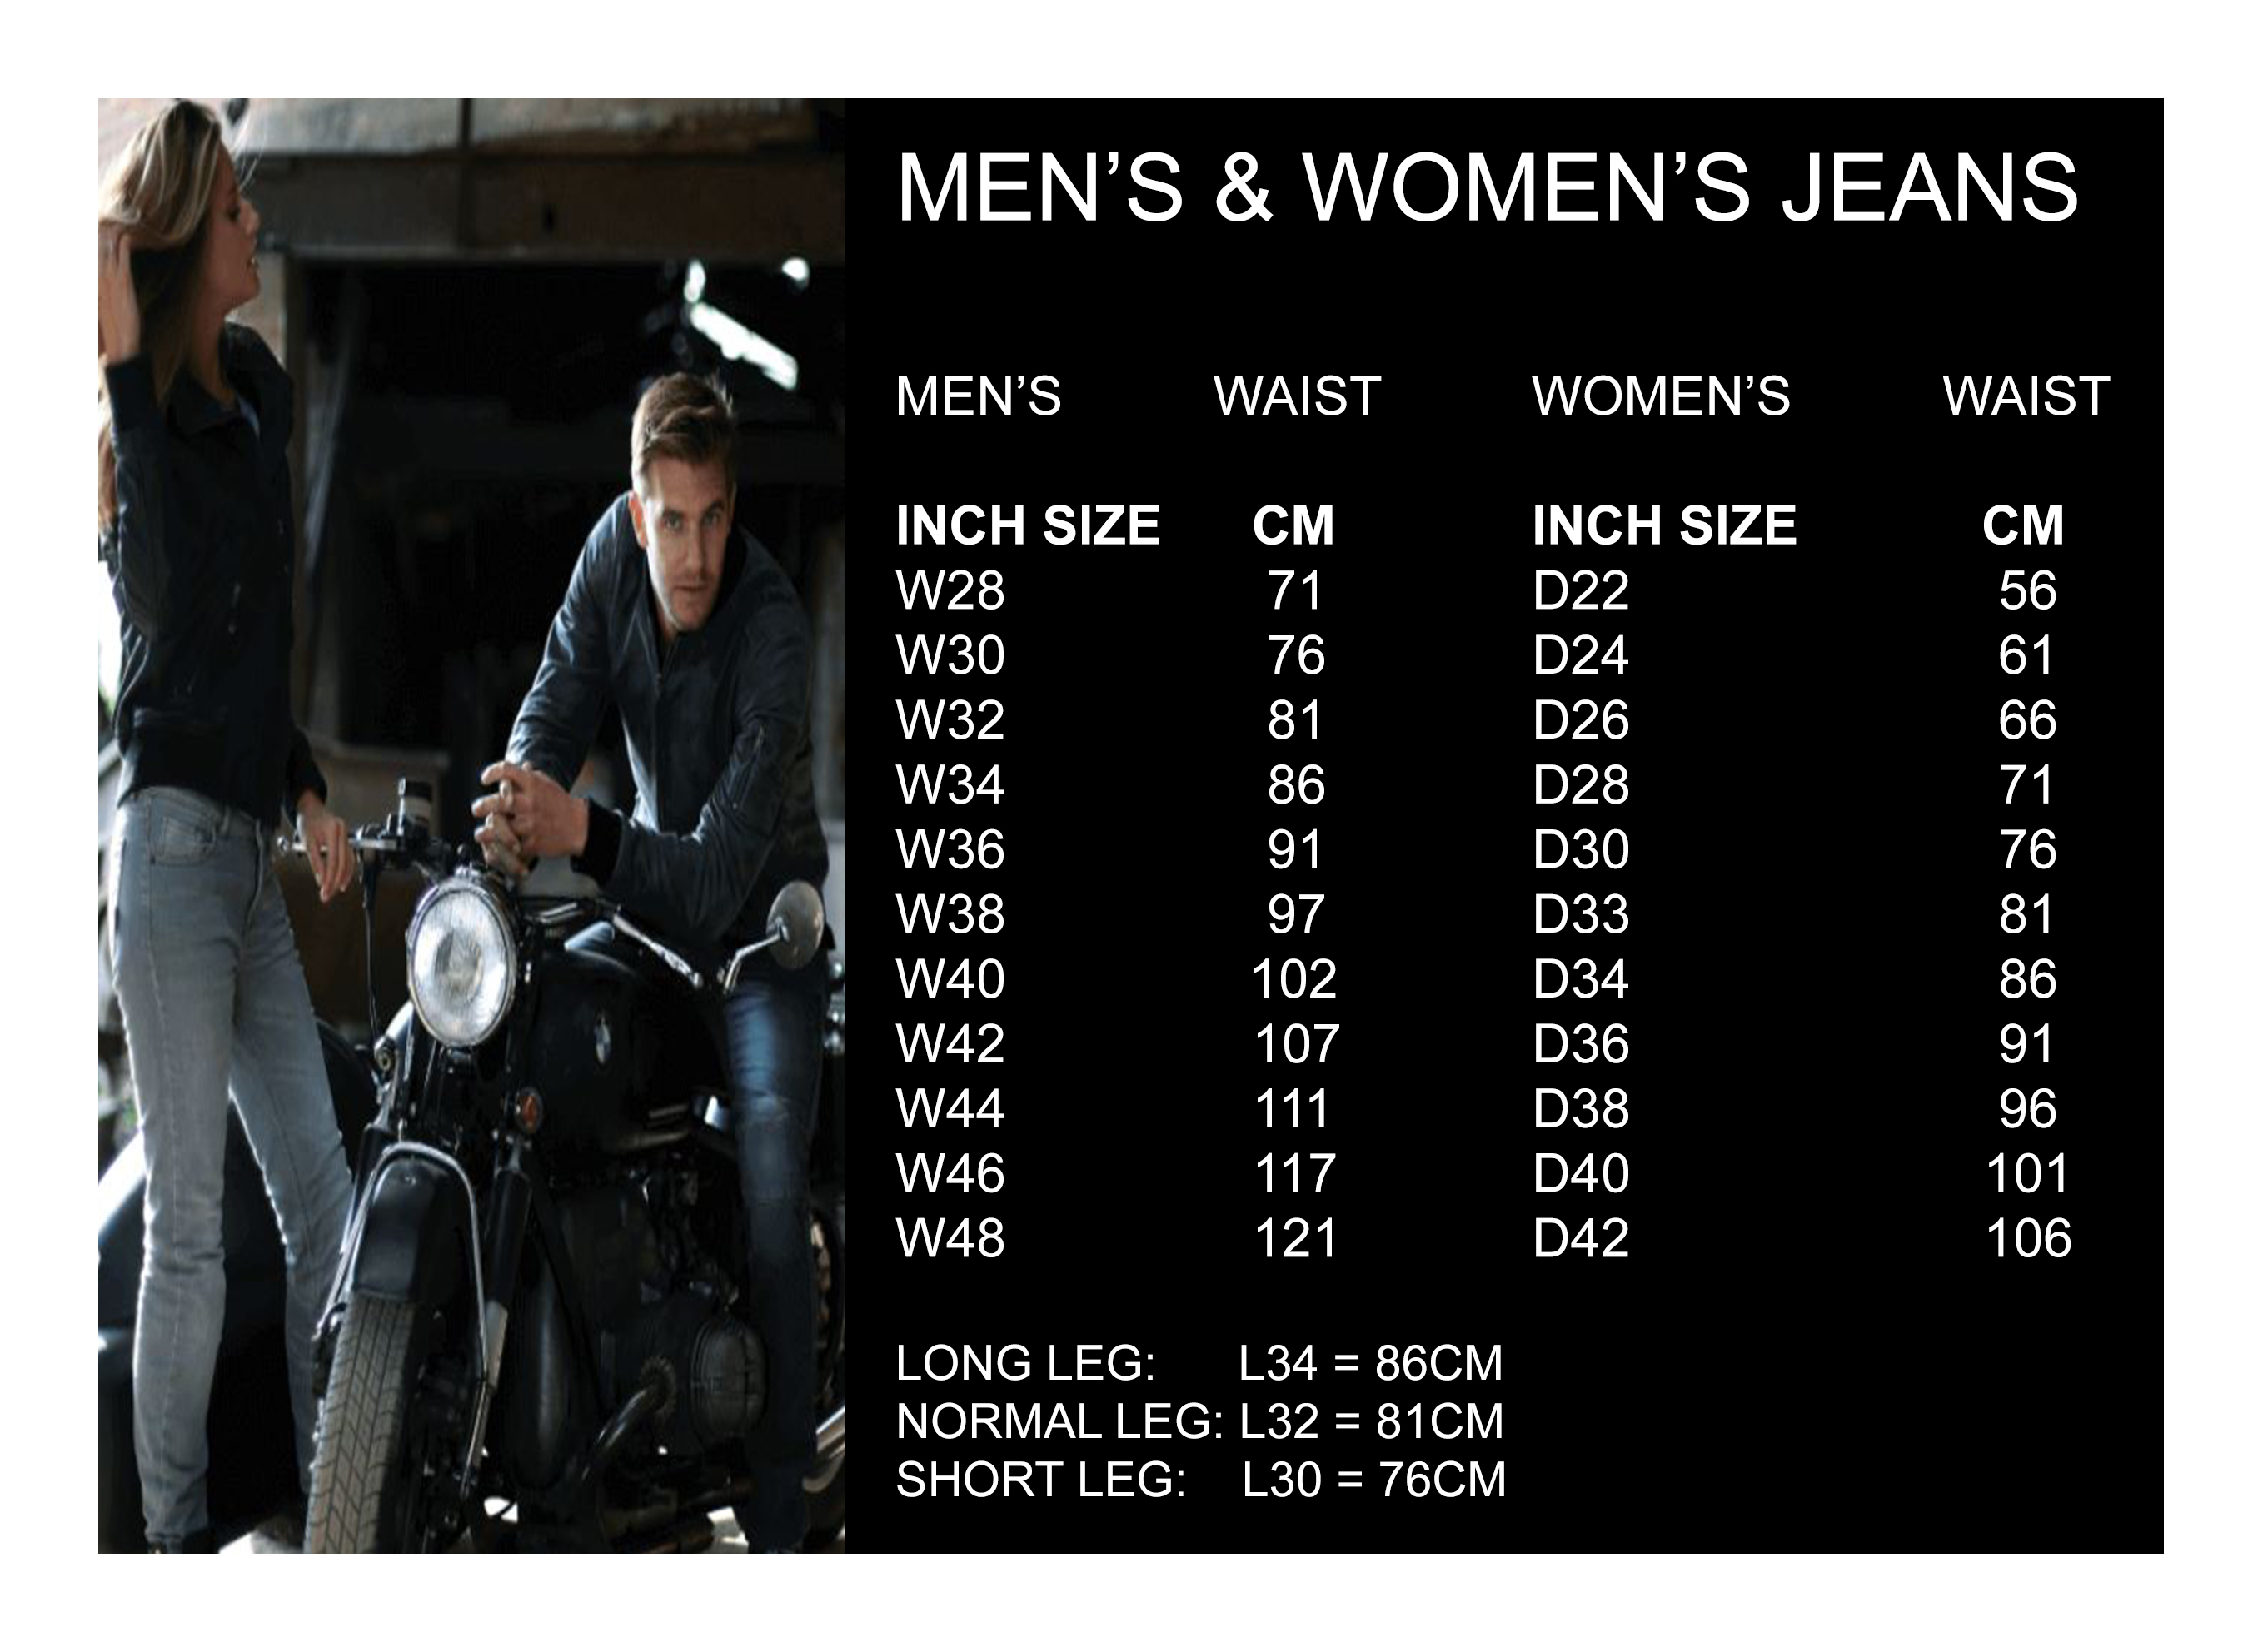 Men's & Women's Jeans sizes